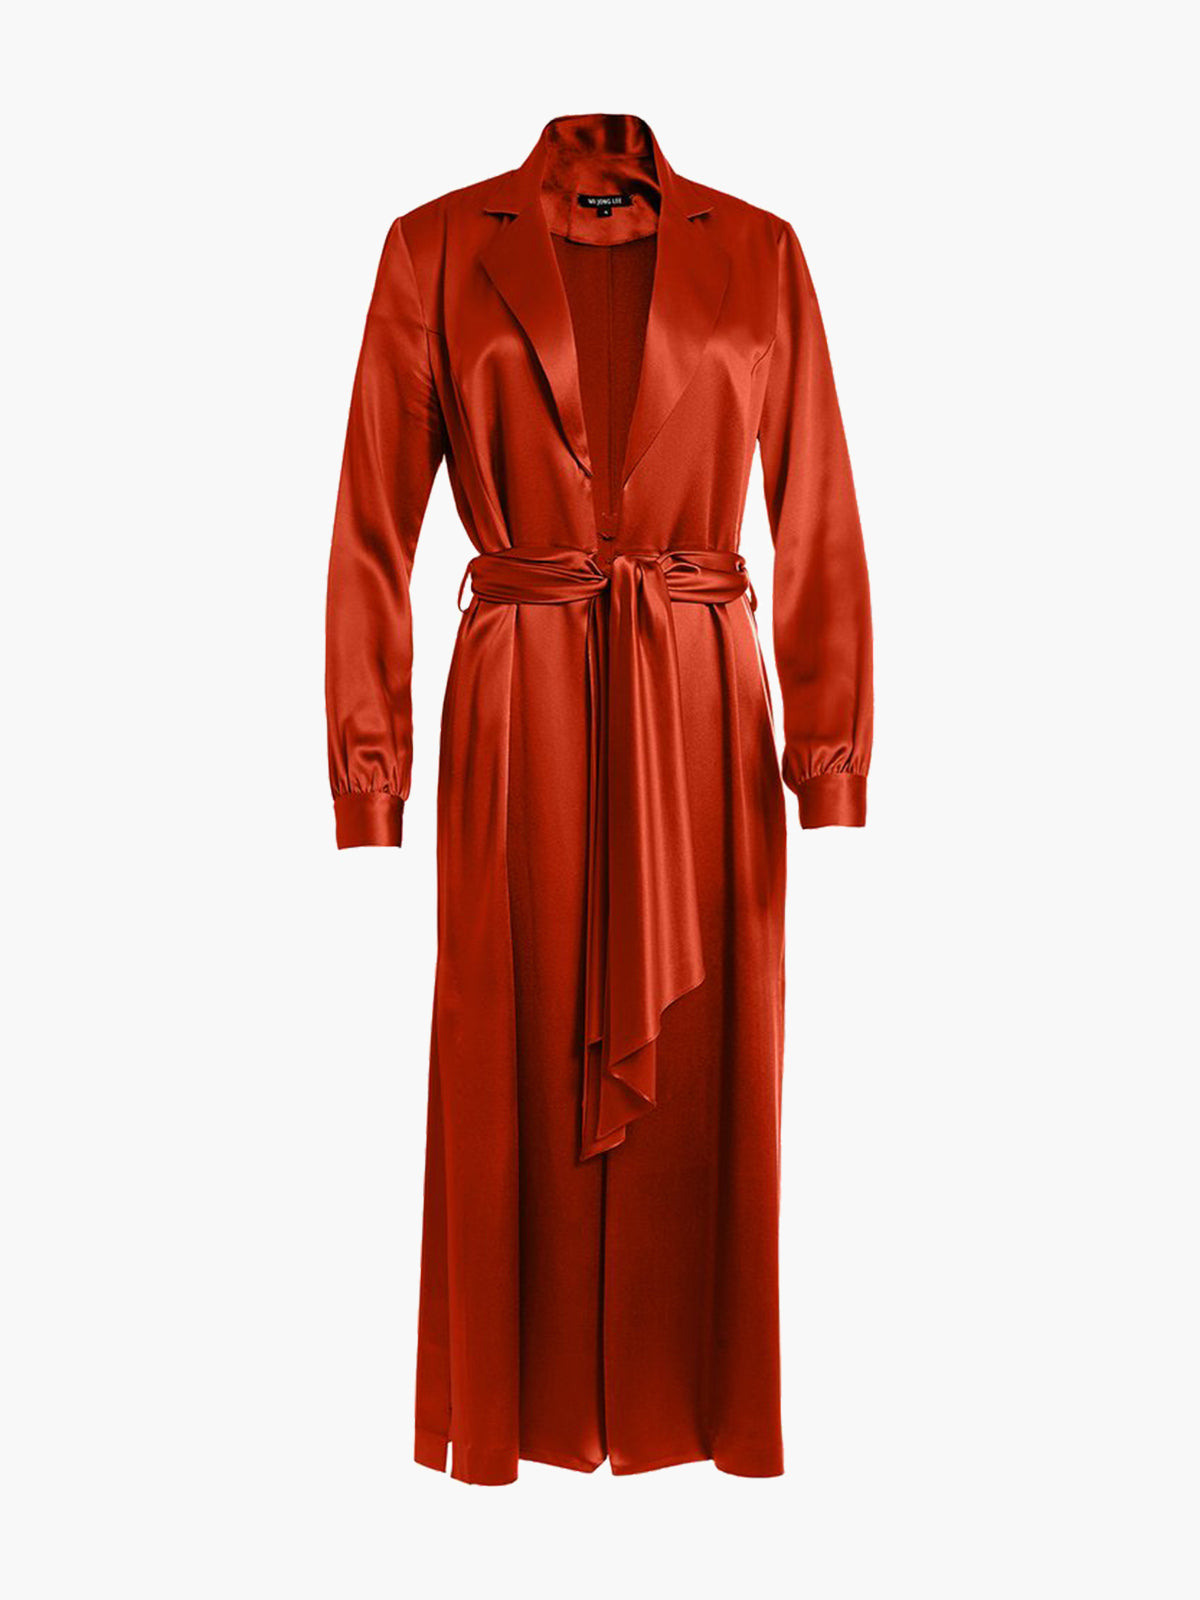 Long Sleeve Coat Dress | Burnt Orange